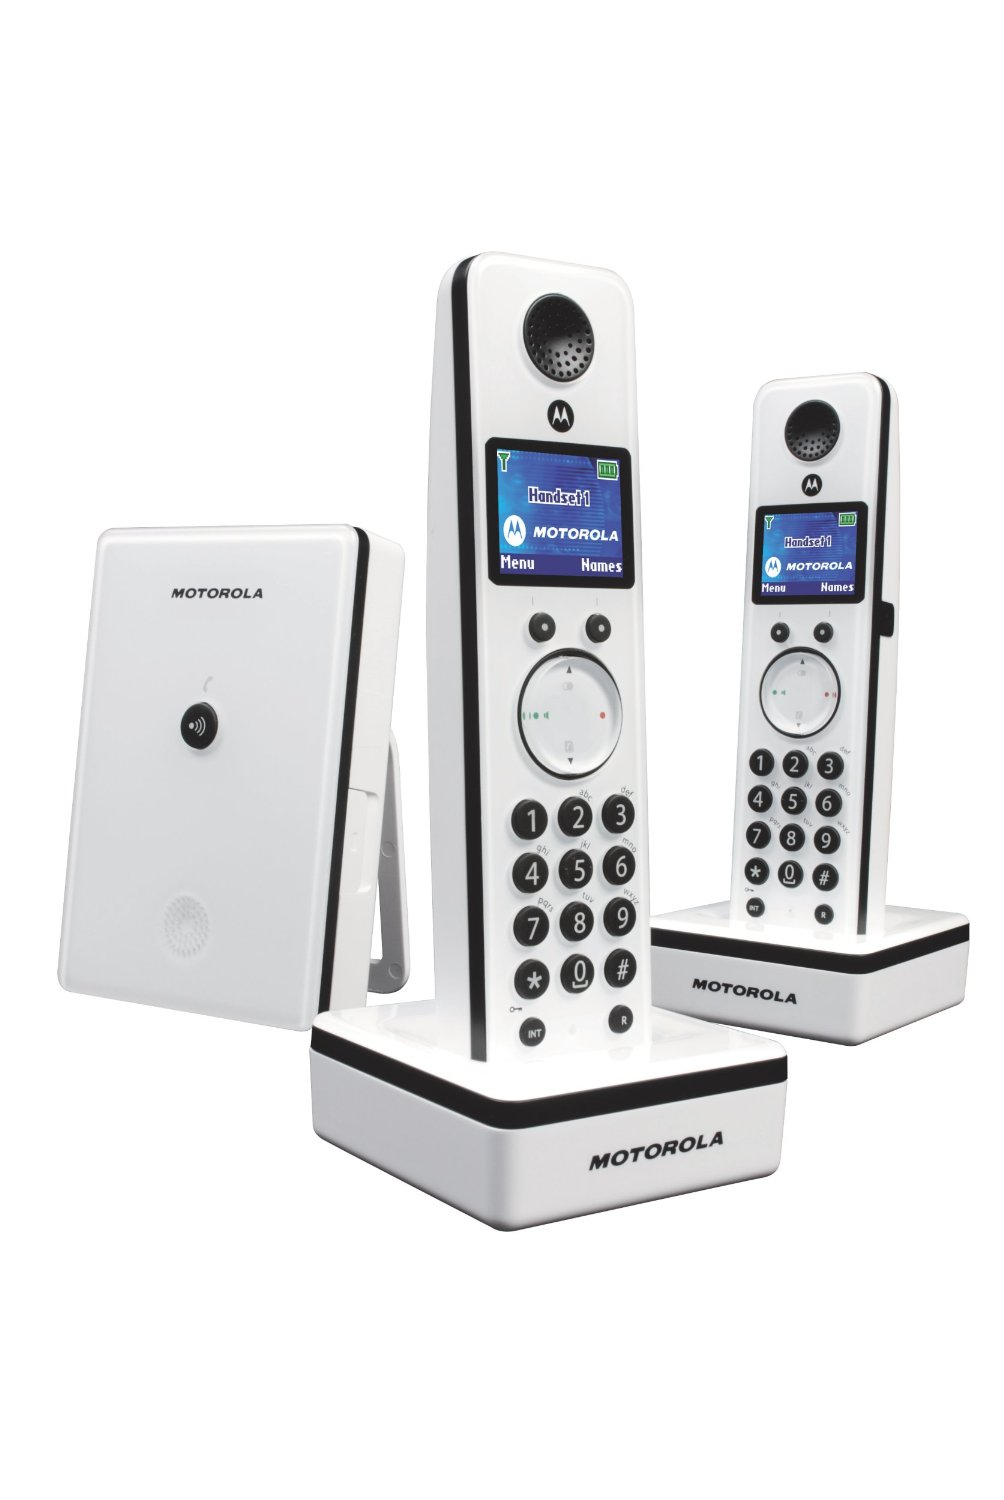 motorola d802 twin schnurlos telefon sim kartenleser f r telefonnummern ebay. Black Bedroom Furniture Sets. Home Design Ideas